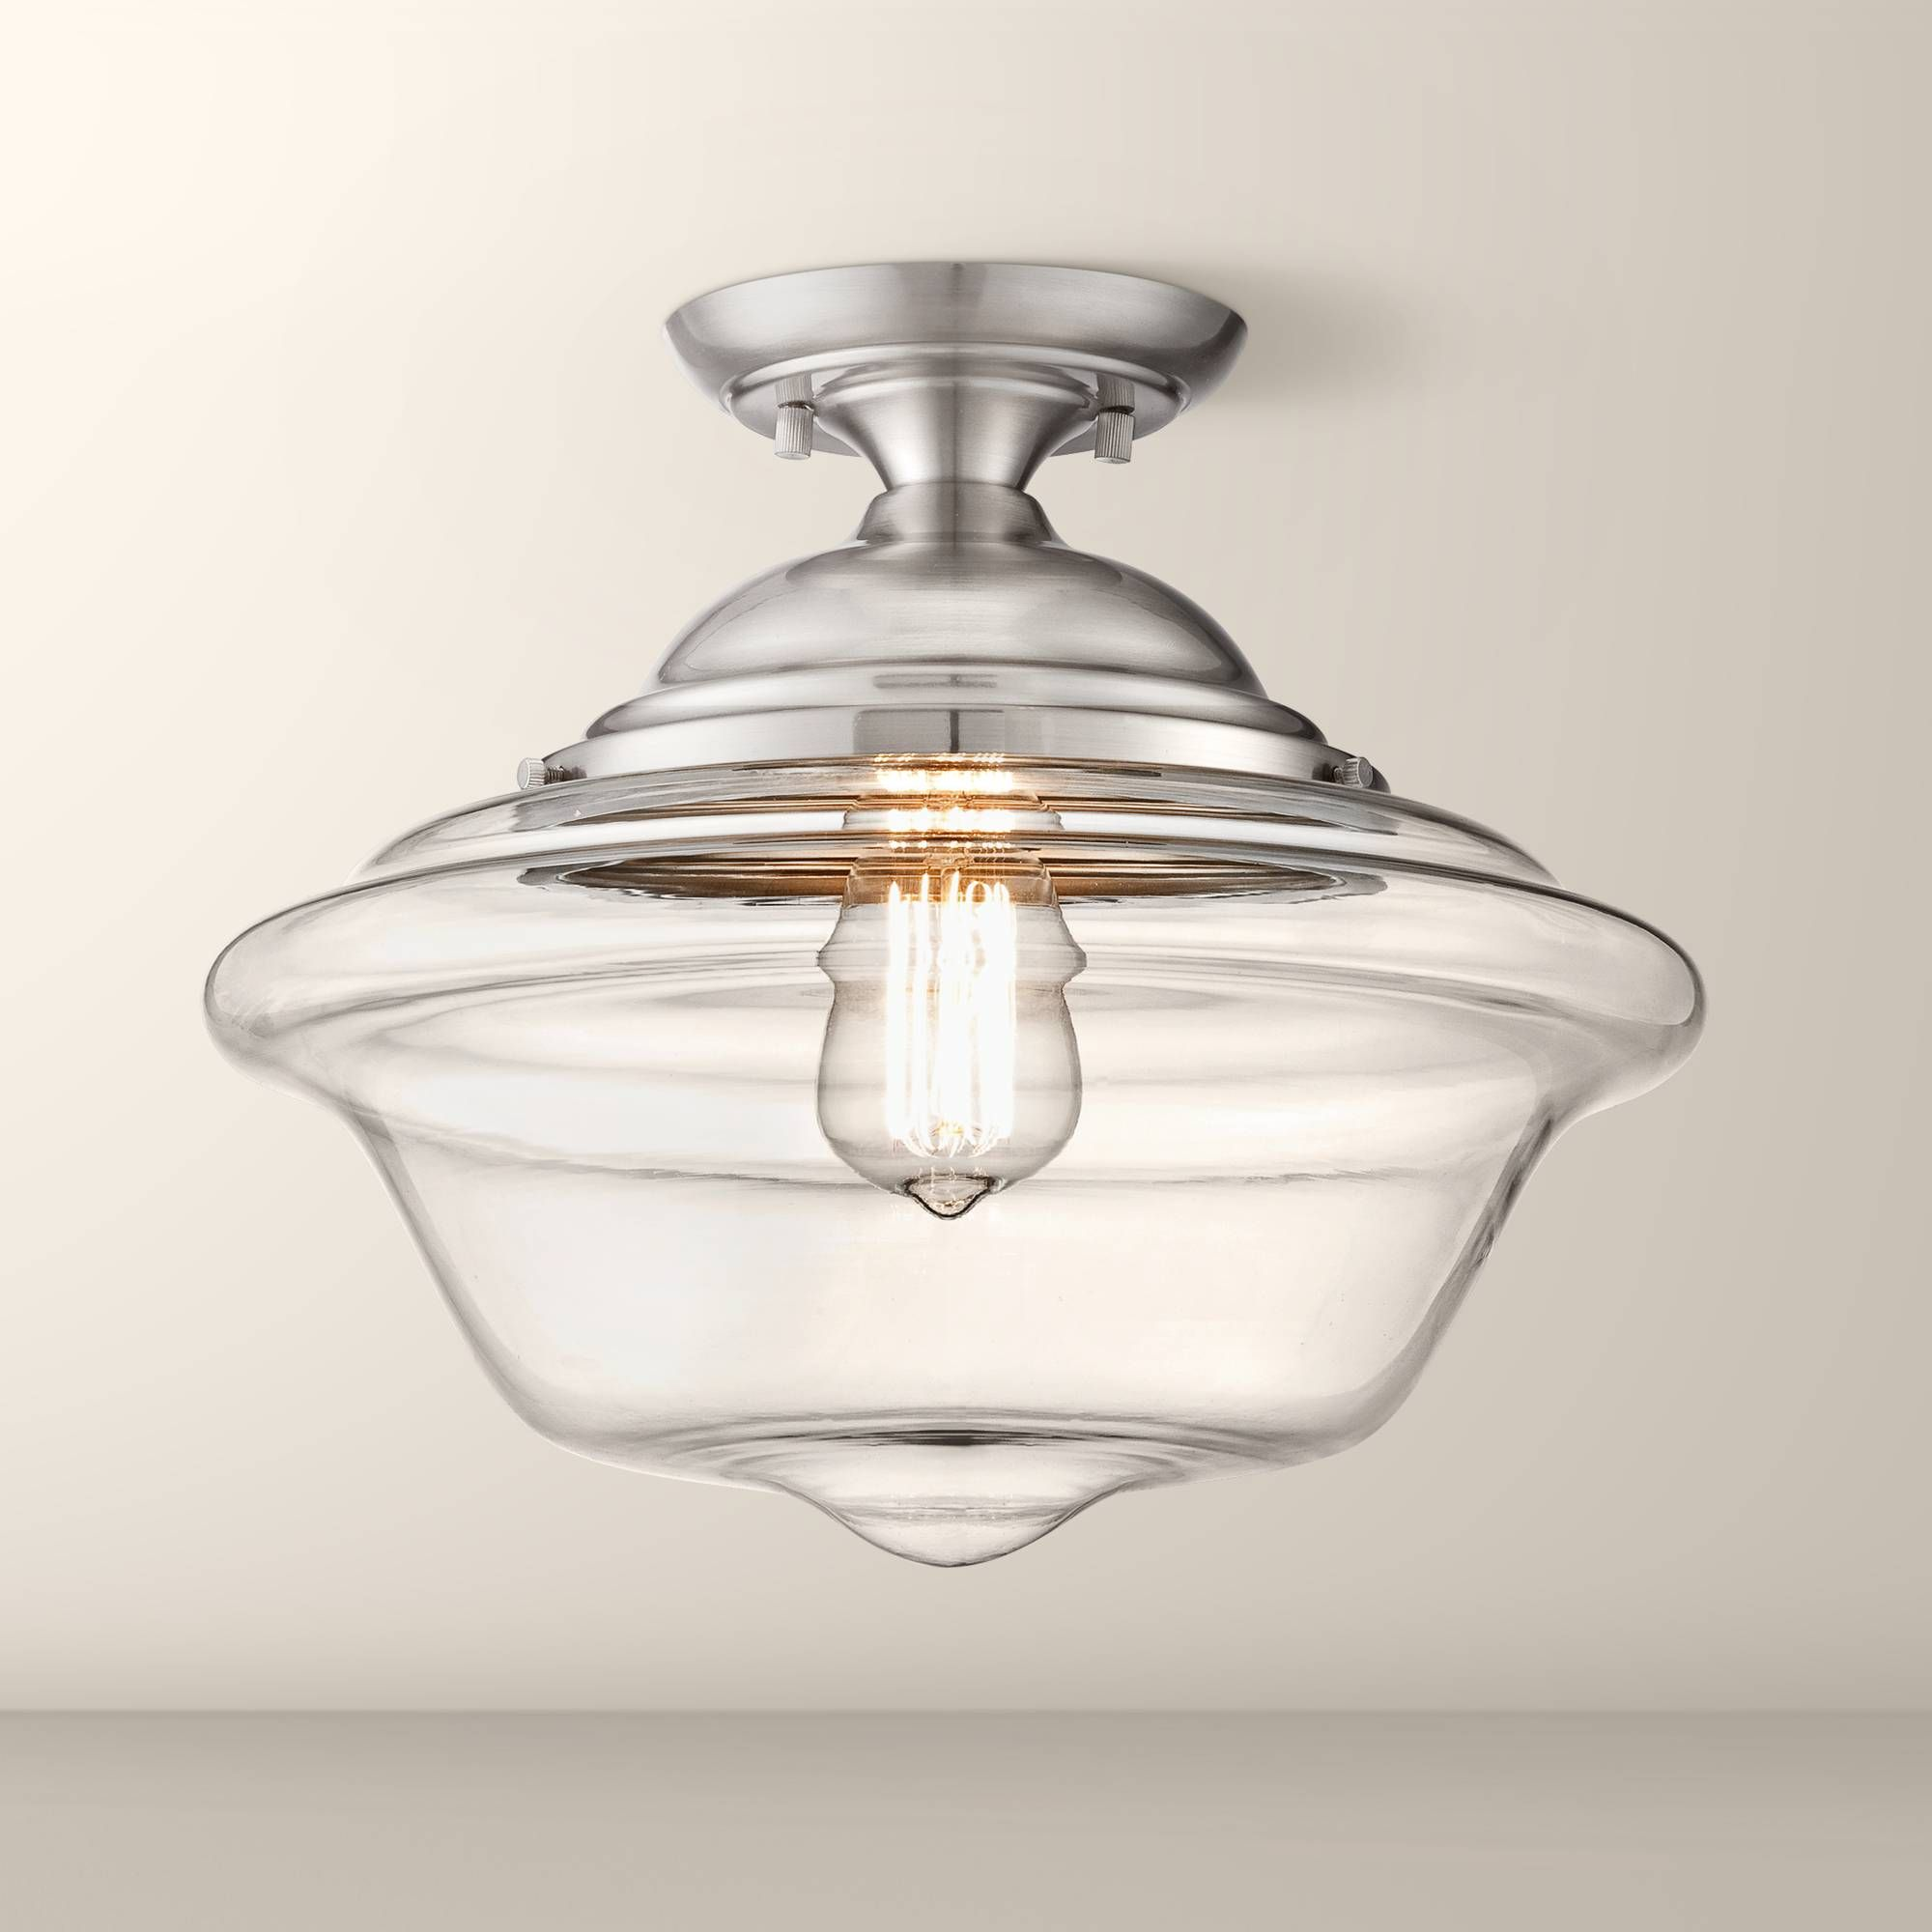 Schoolhouse Style Clear Glass Shows Through To A Vintage Edison Bulb In This Flushmount Ceiling Light Design